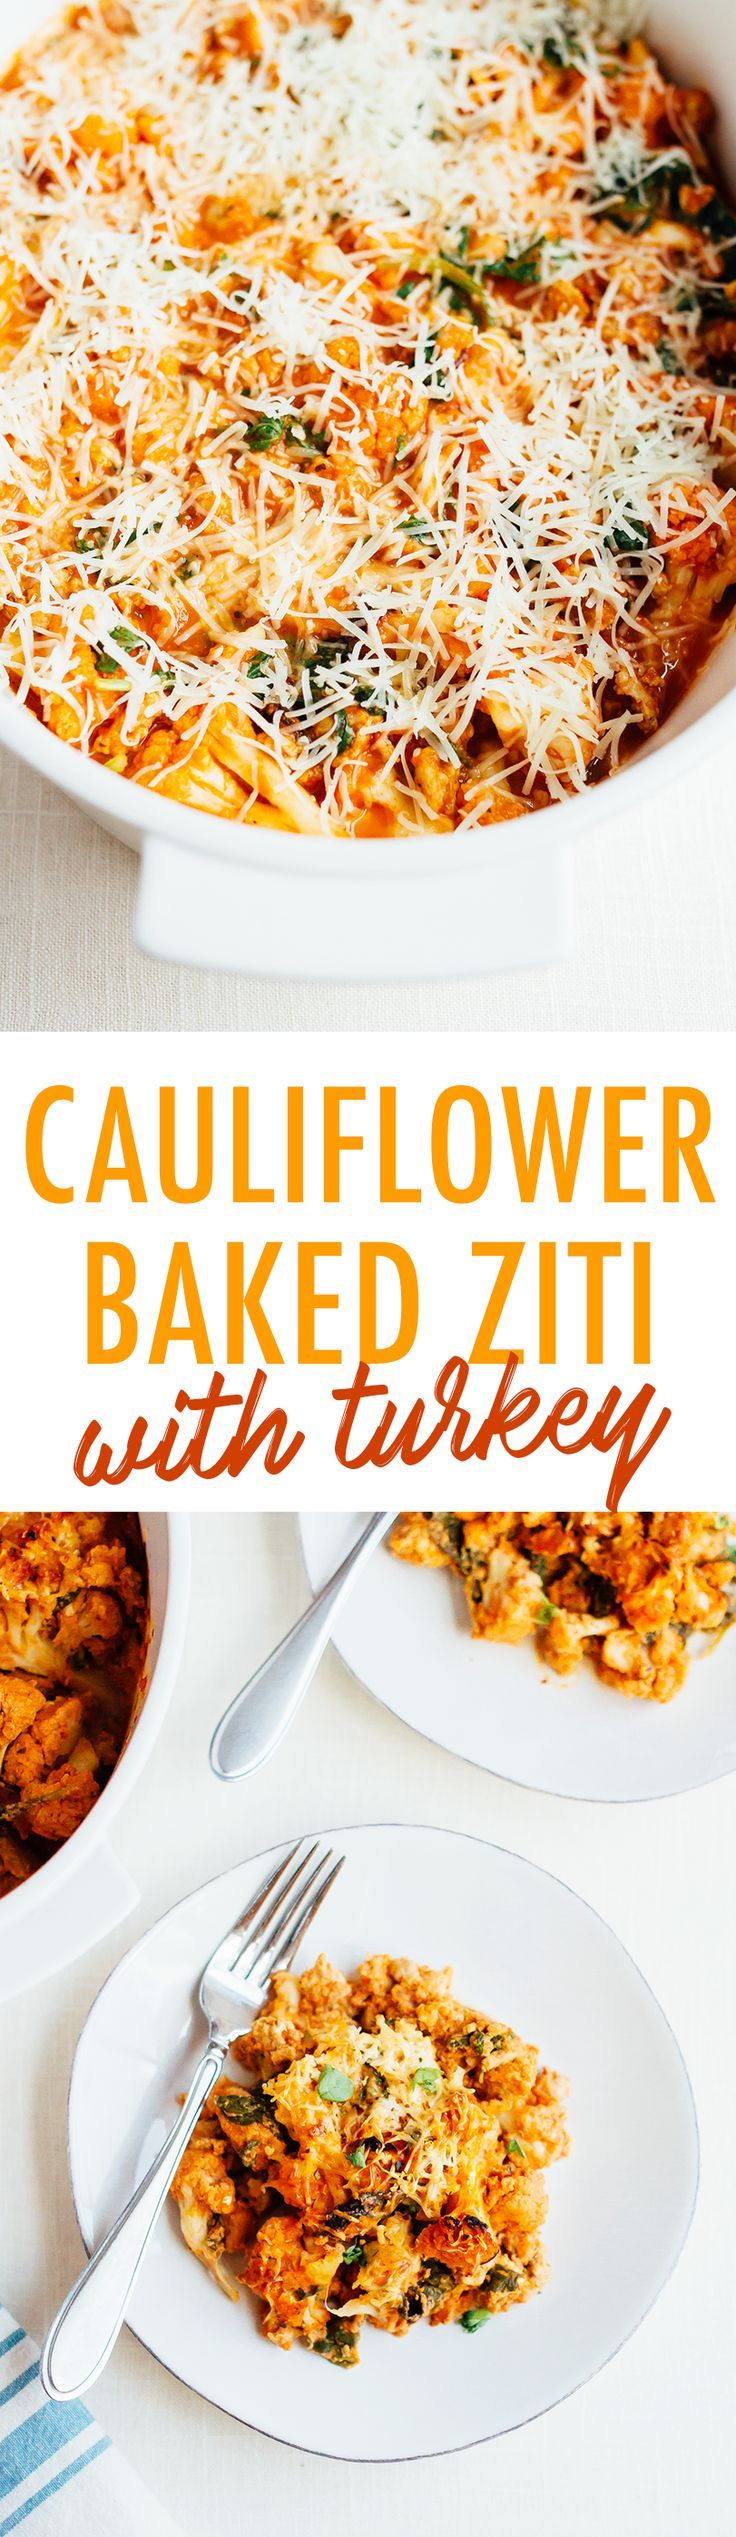 This turkey cauliflower baked ziti uses cooked cauliflower instead of pasta noodles so it's low-carb and gluten-free while still being cheesy and delicious. Gluten-free and low-carb.